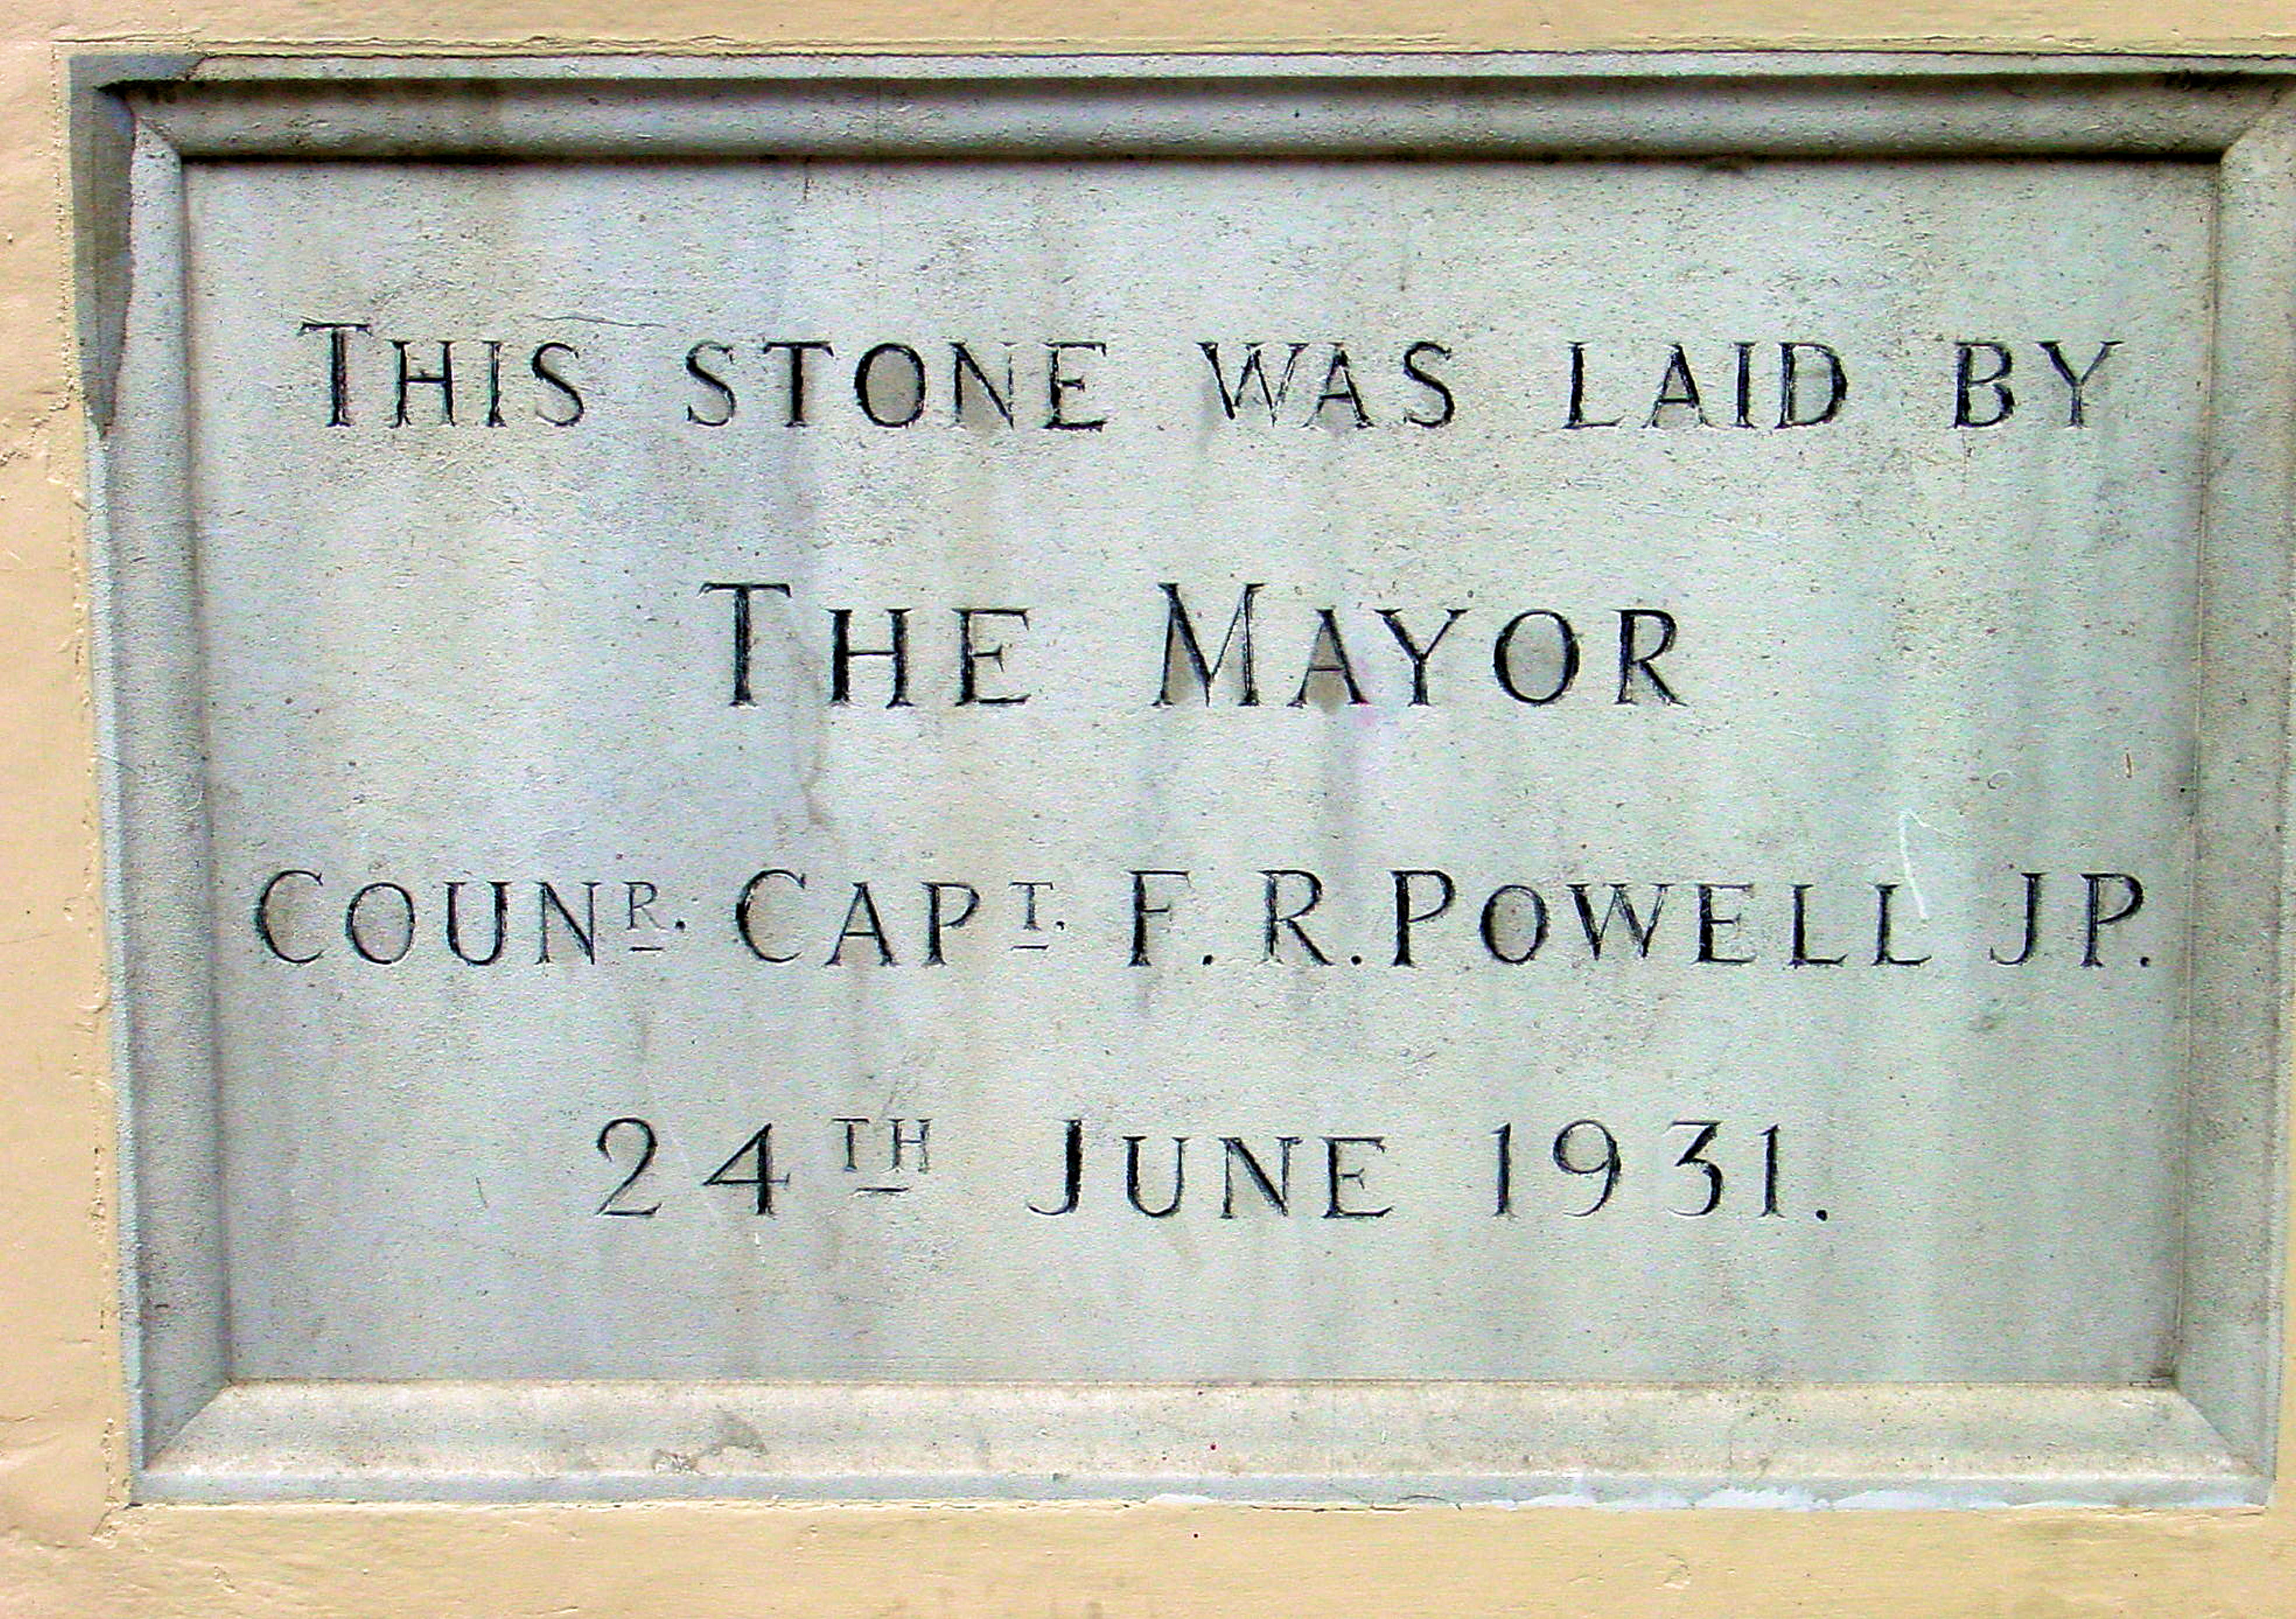 th foundation stone for the fire station in ladywell by mayor capt f r powell 24 06 1931 alan sencicle 2009 heritage wire harness fort payne ford ac heater wiring diagram led heritage wire harness at gsmx.co